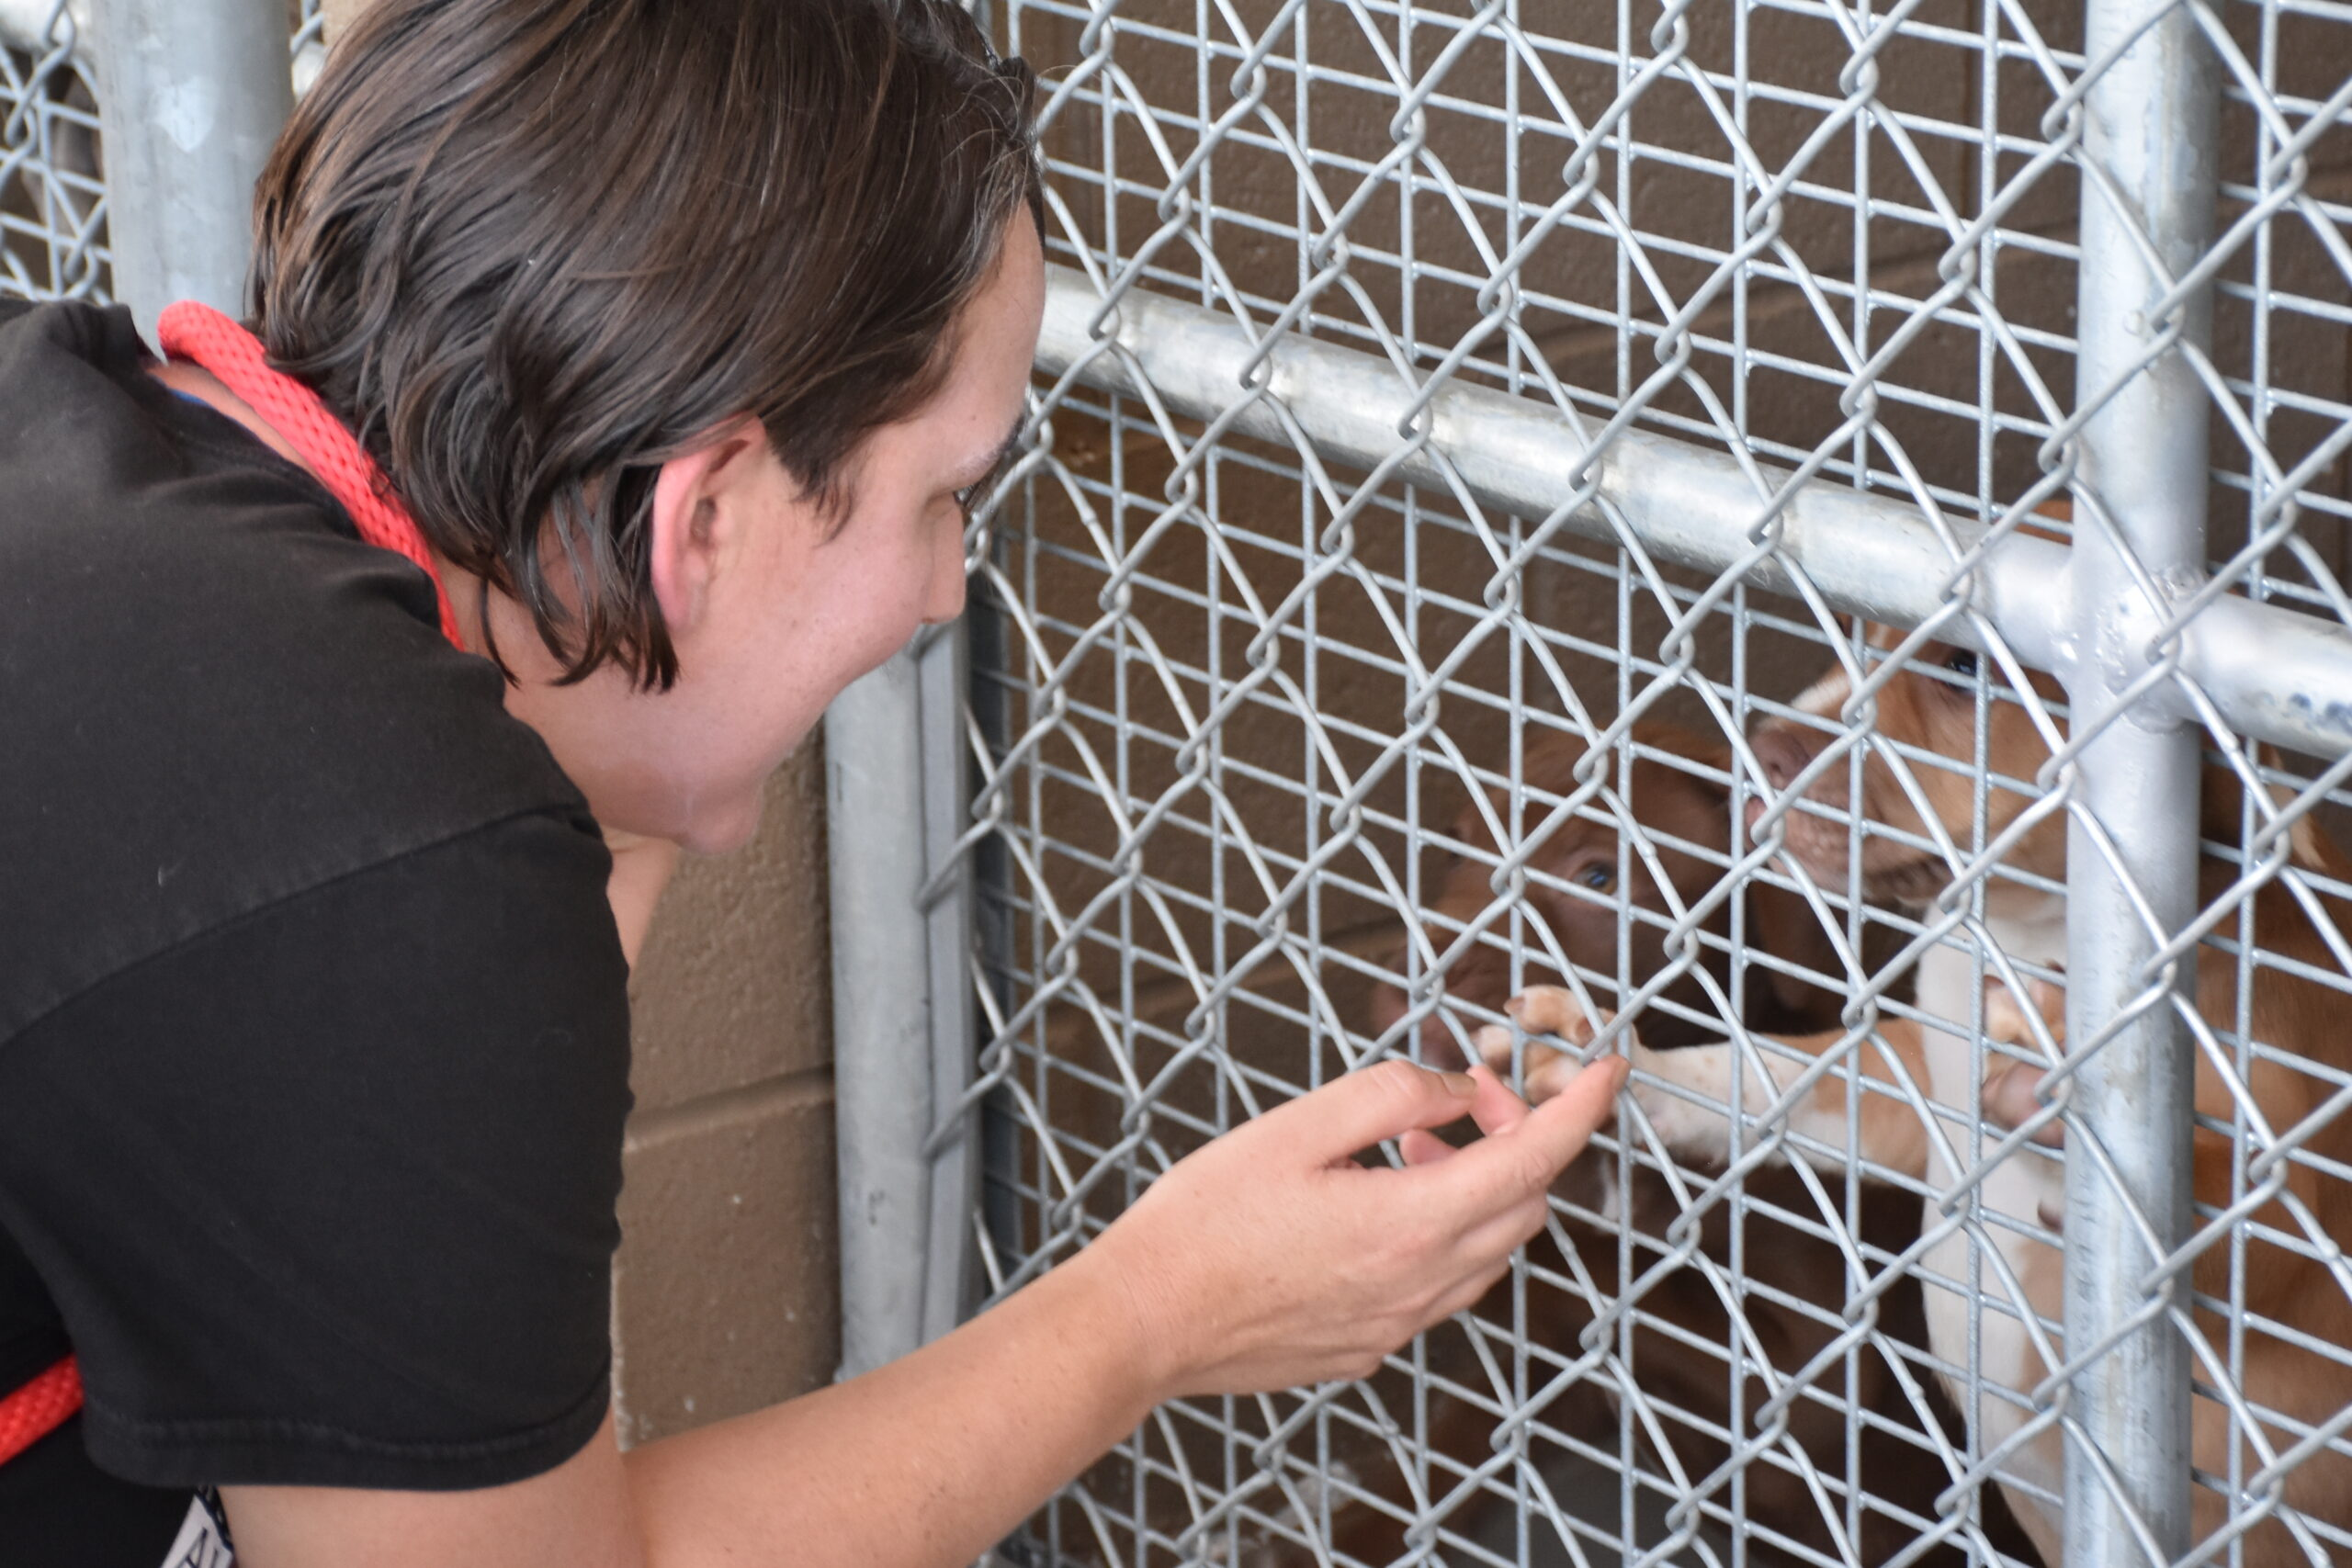 Adoption staff member meets orphan pups in need of transport